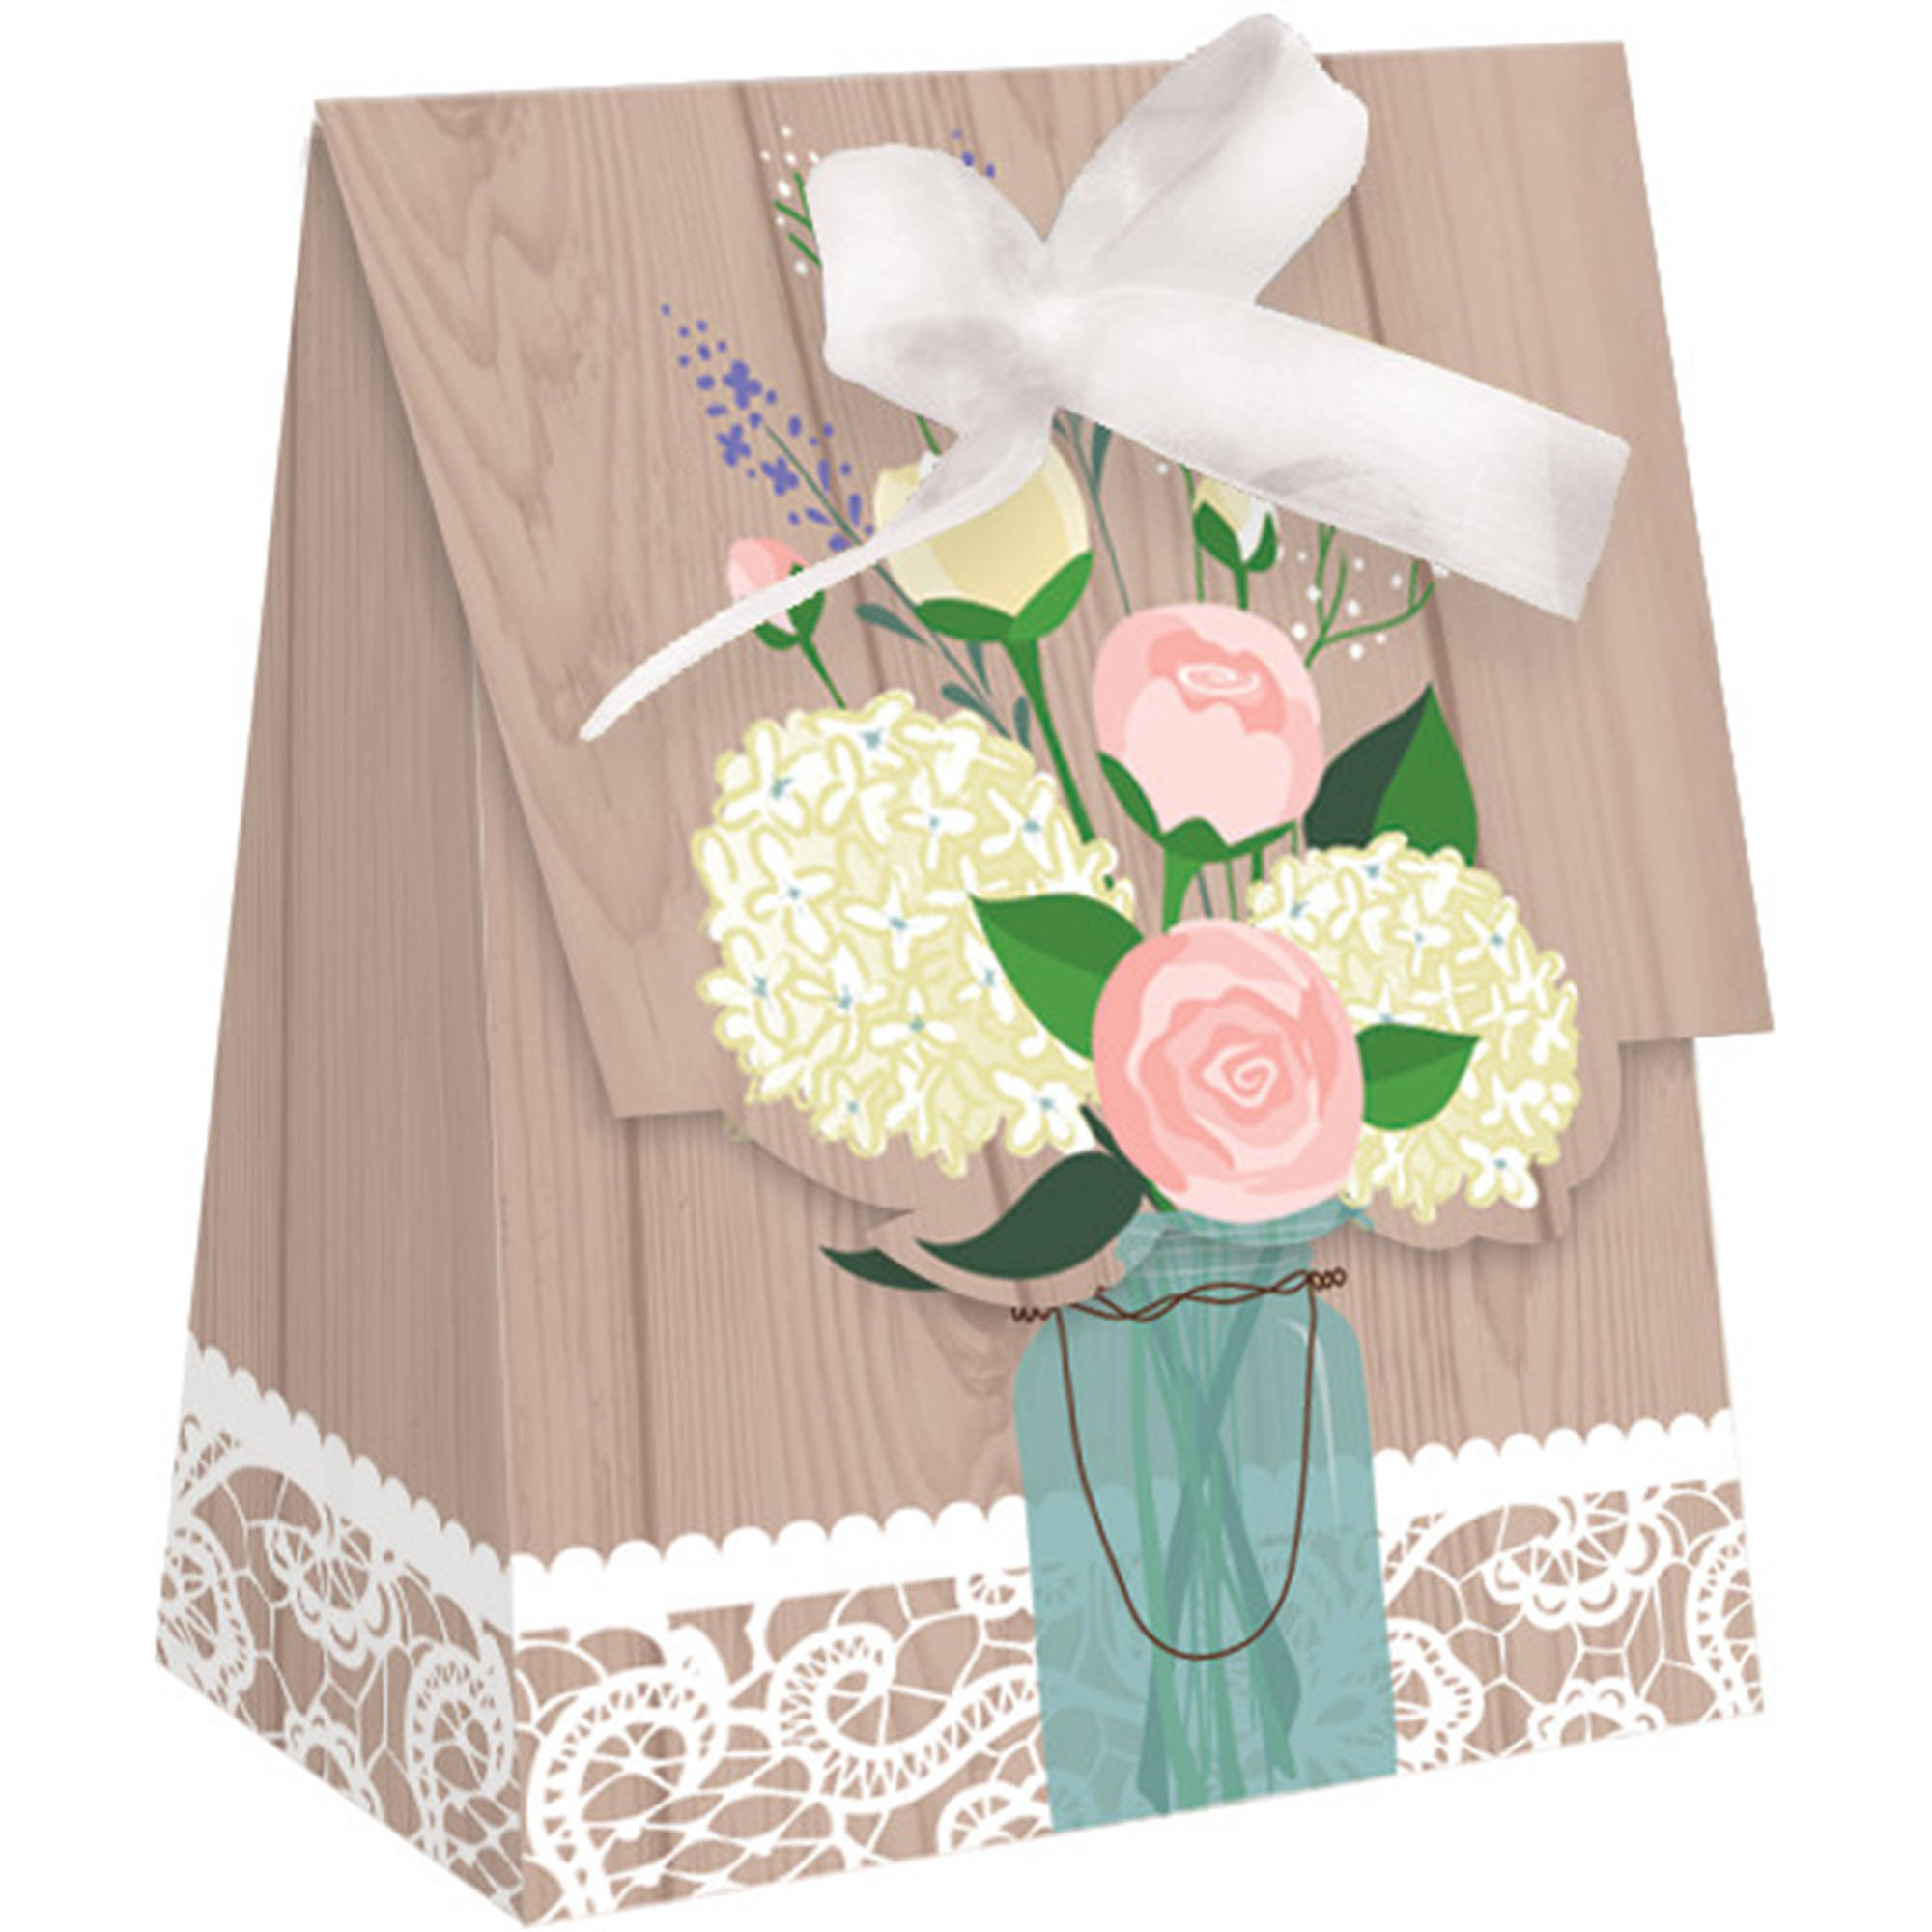 Rustic Wedding Favor Bags, 12-Pack